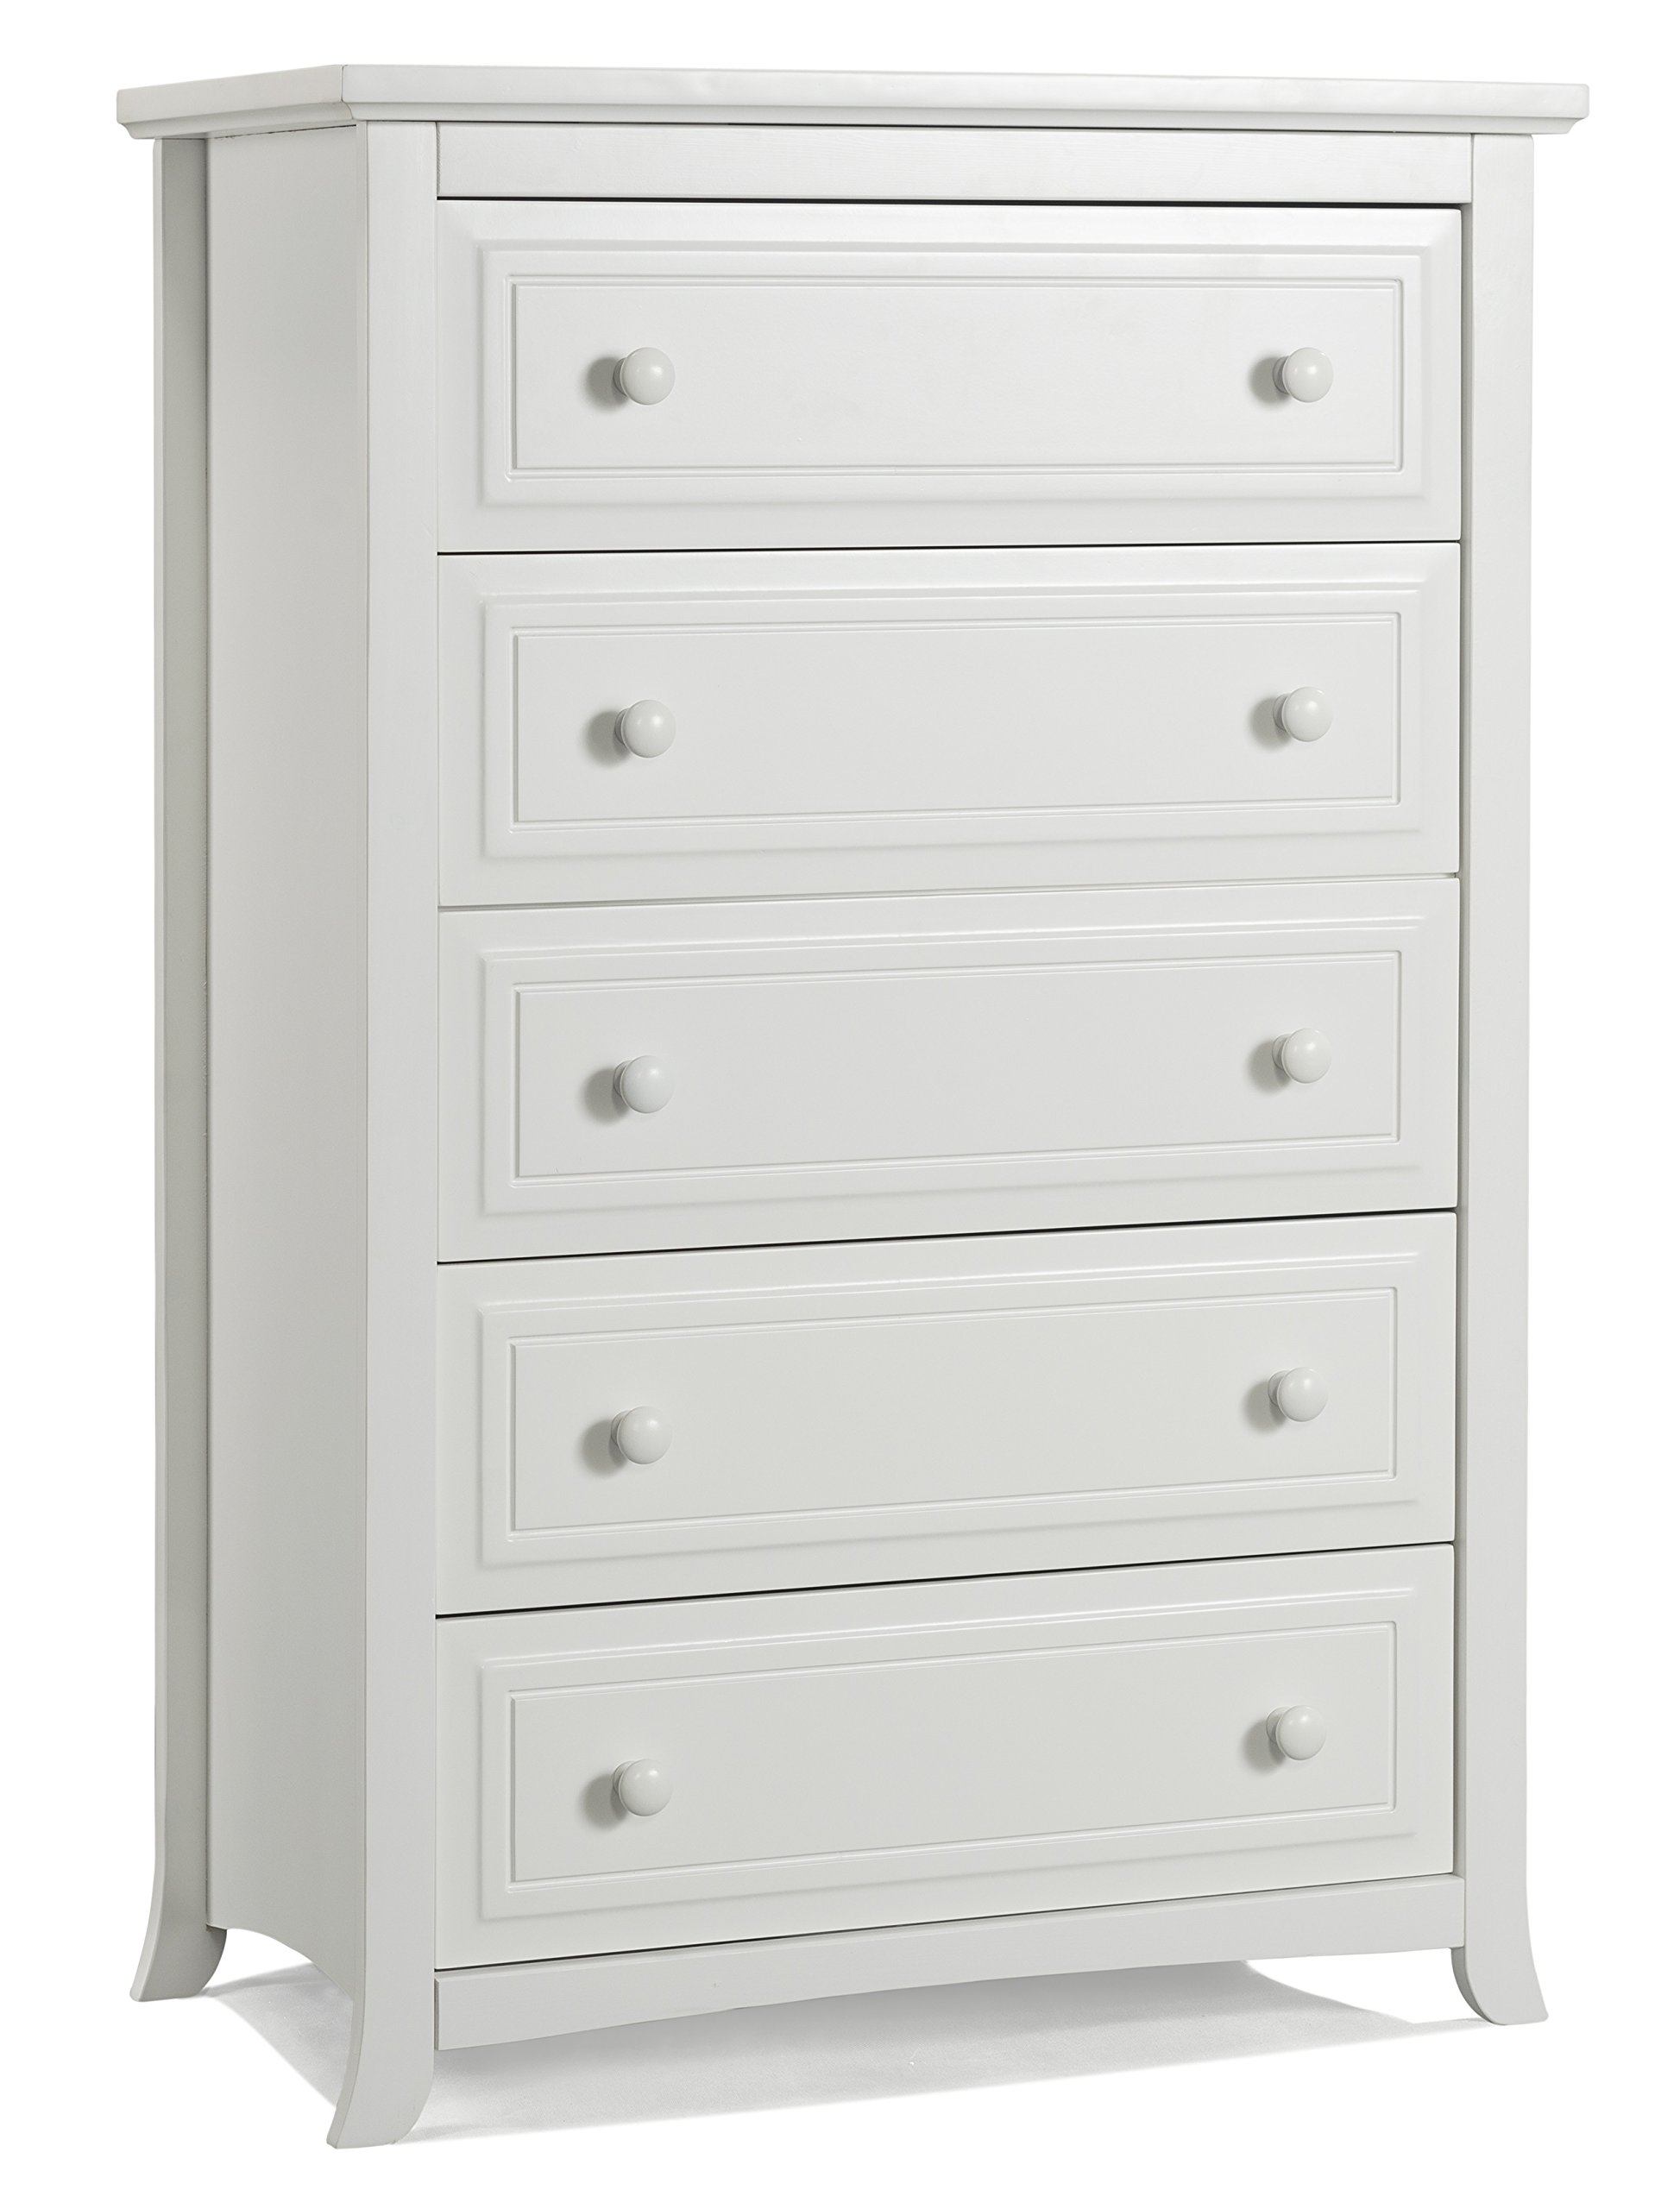 Graco Kendall 5 Drawer Chest, White